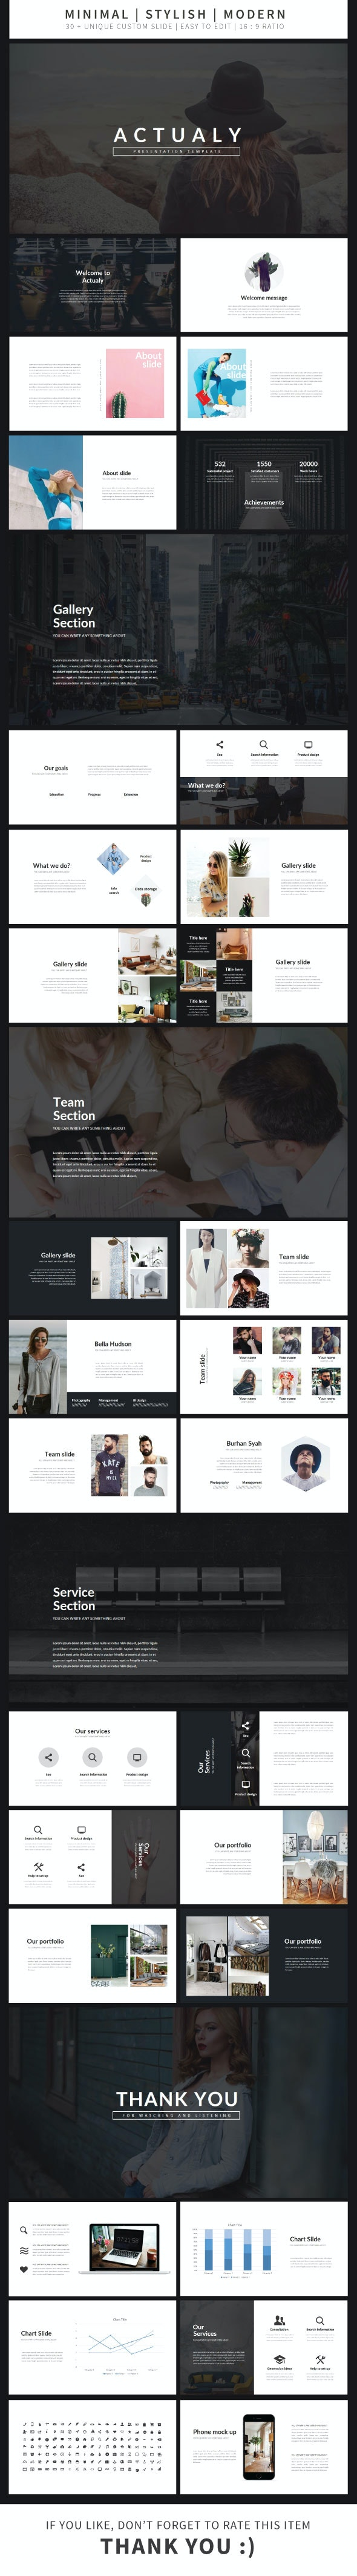 Actualy Presentation Template - Business PowerPoint Templates